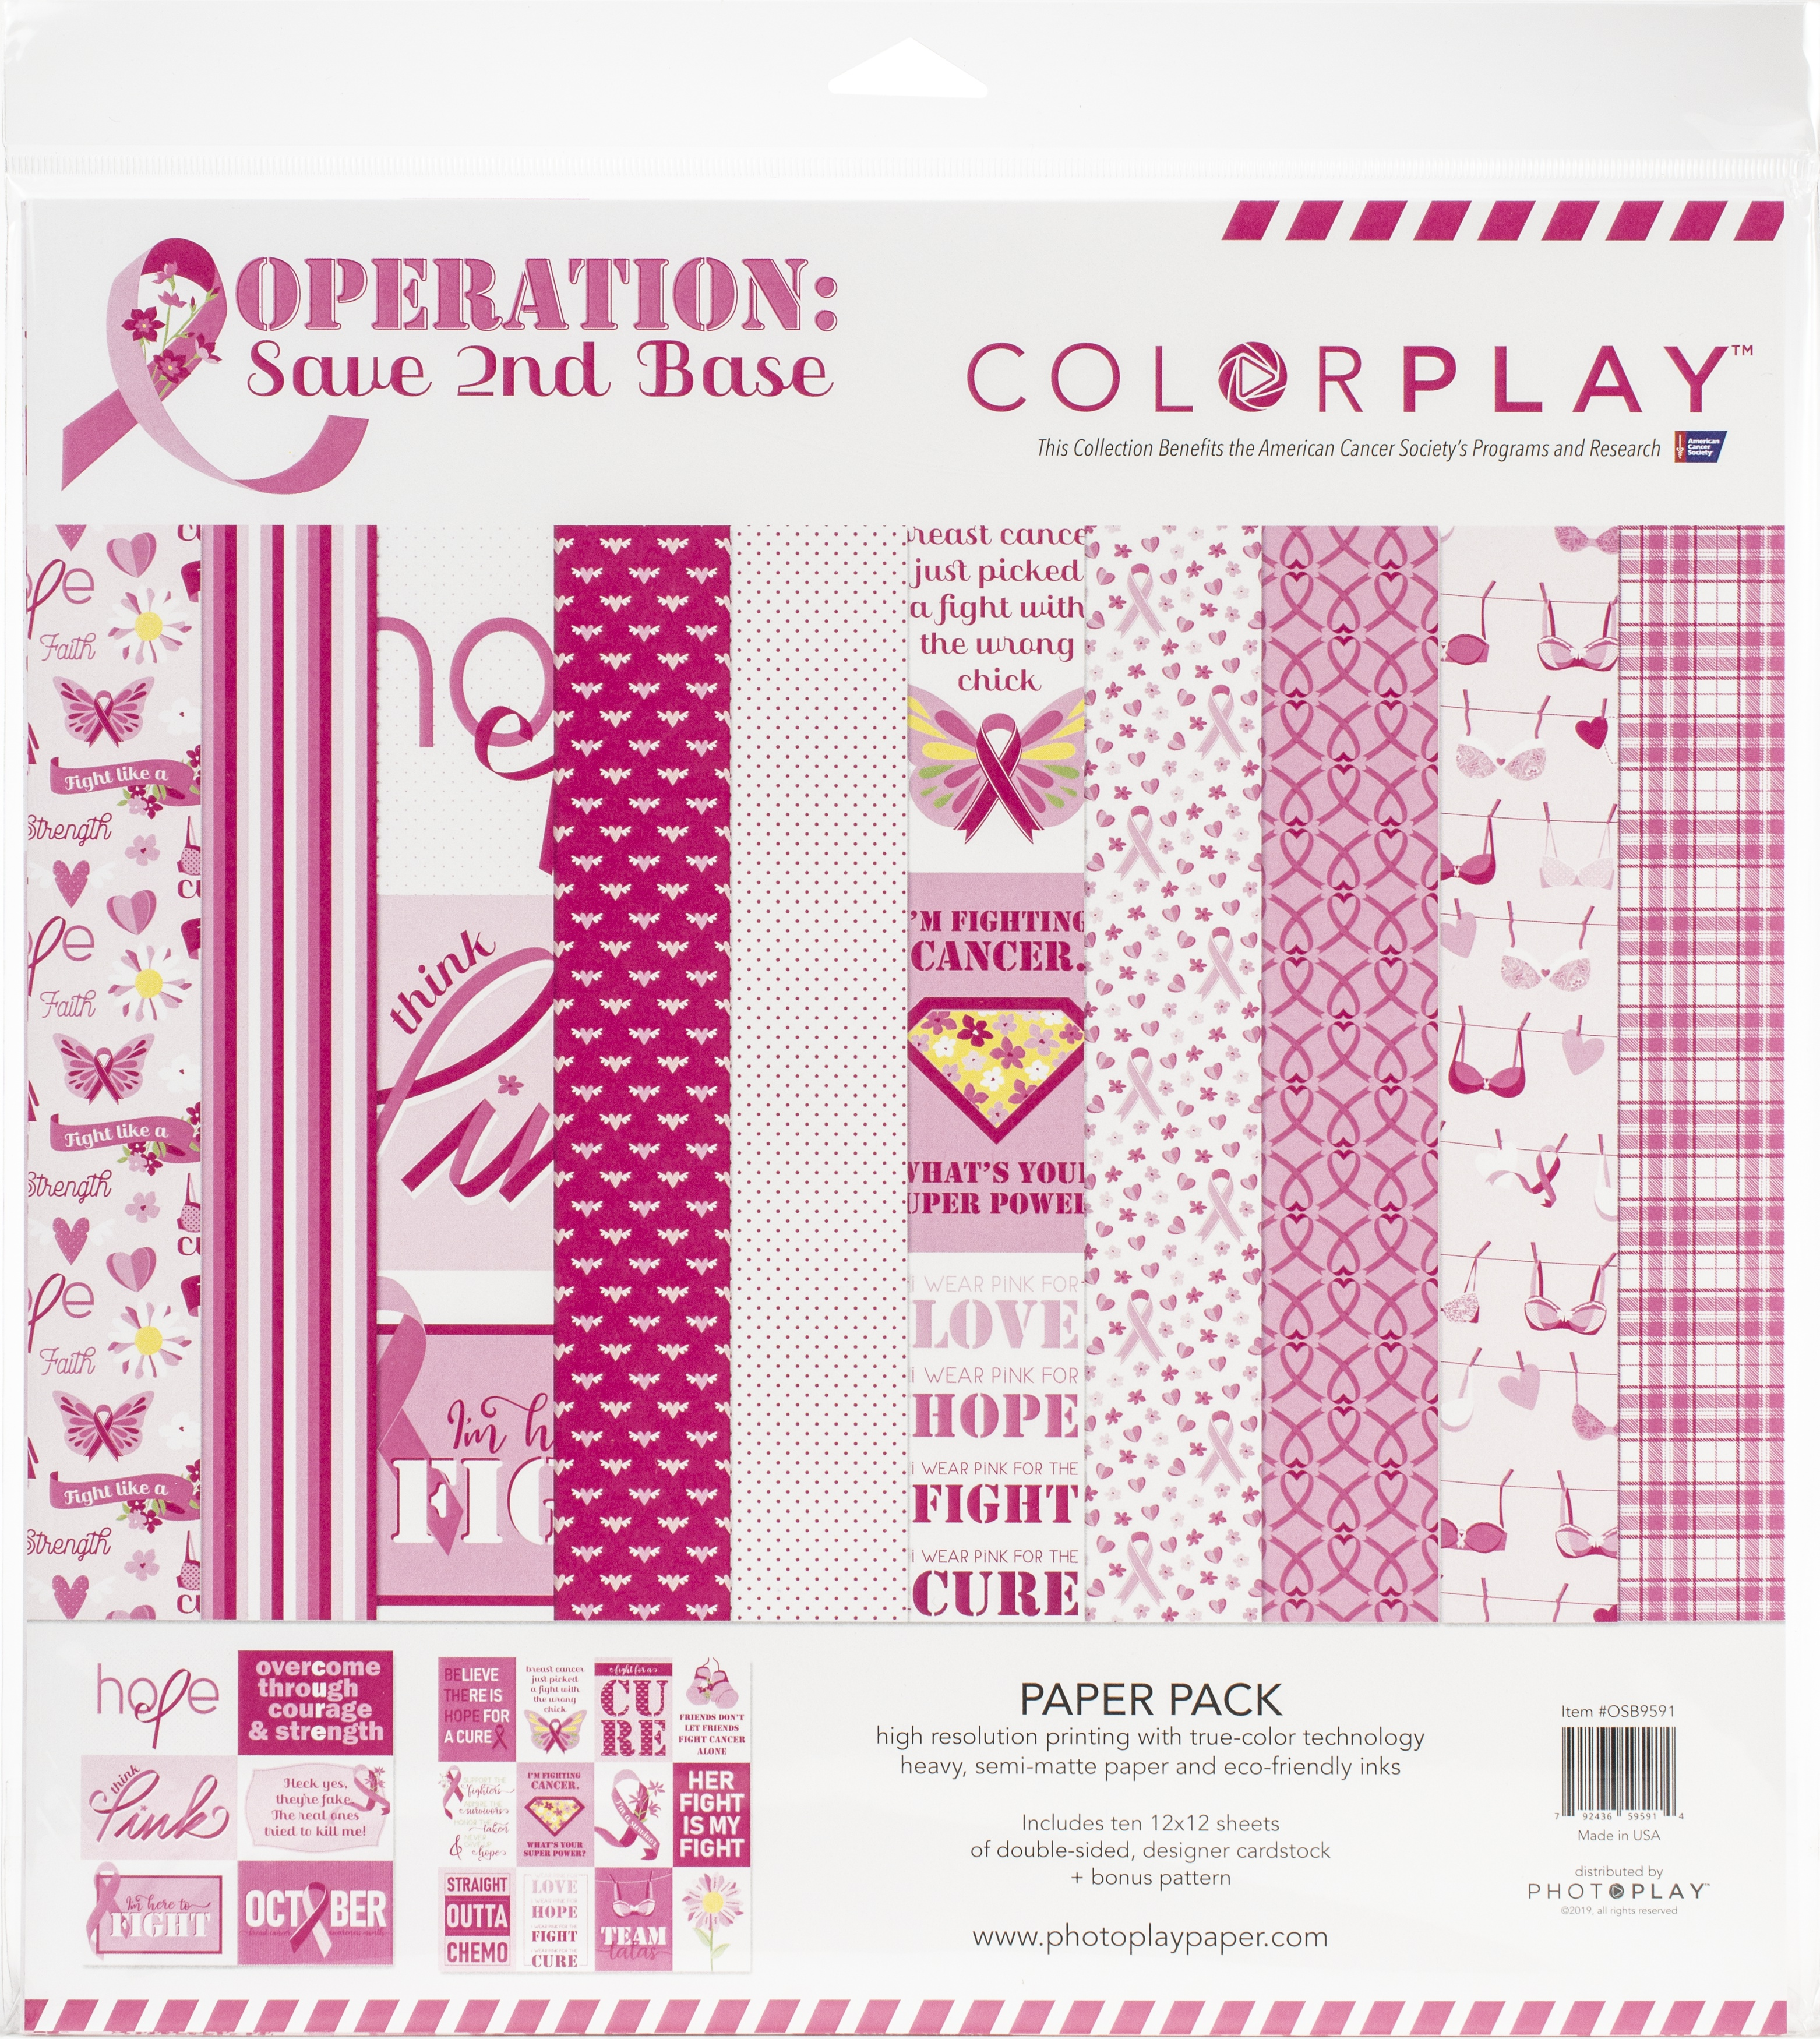 12X12-Operation Save 2nd Base Paper Pack Breast Cancer Awareness